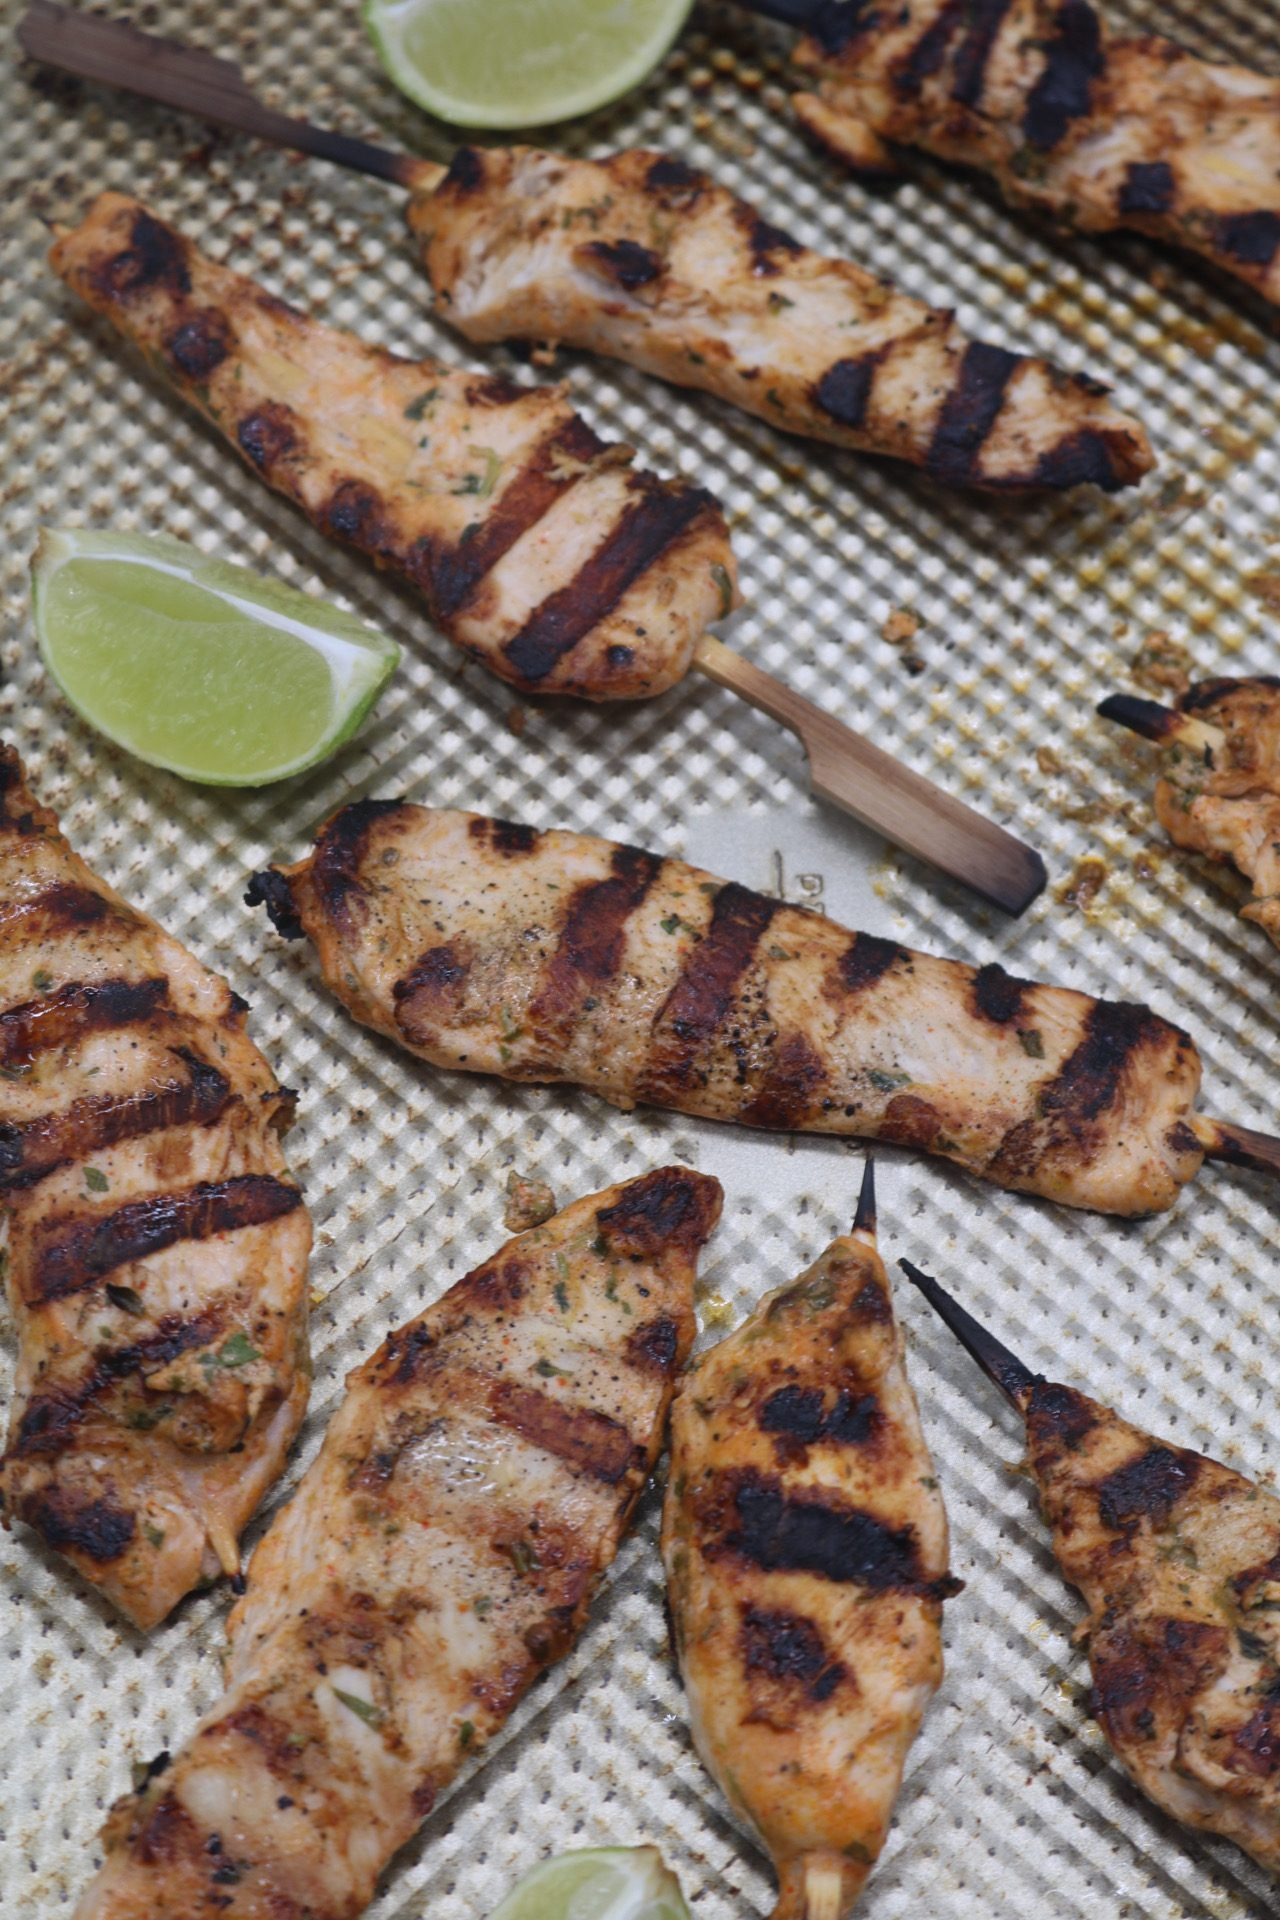 Sriracha and Lime Marinated Chicken Skewers, Sriracha and Lime Marinated Chicken Skewers